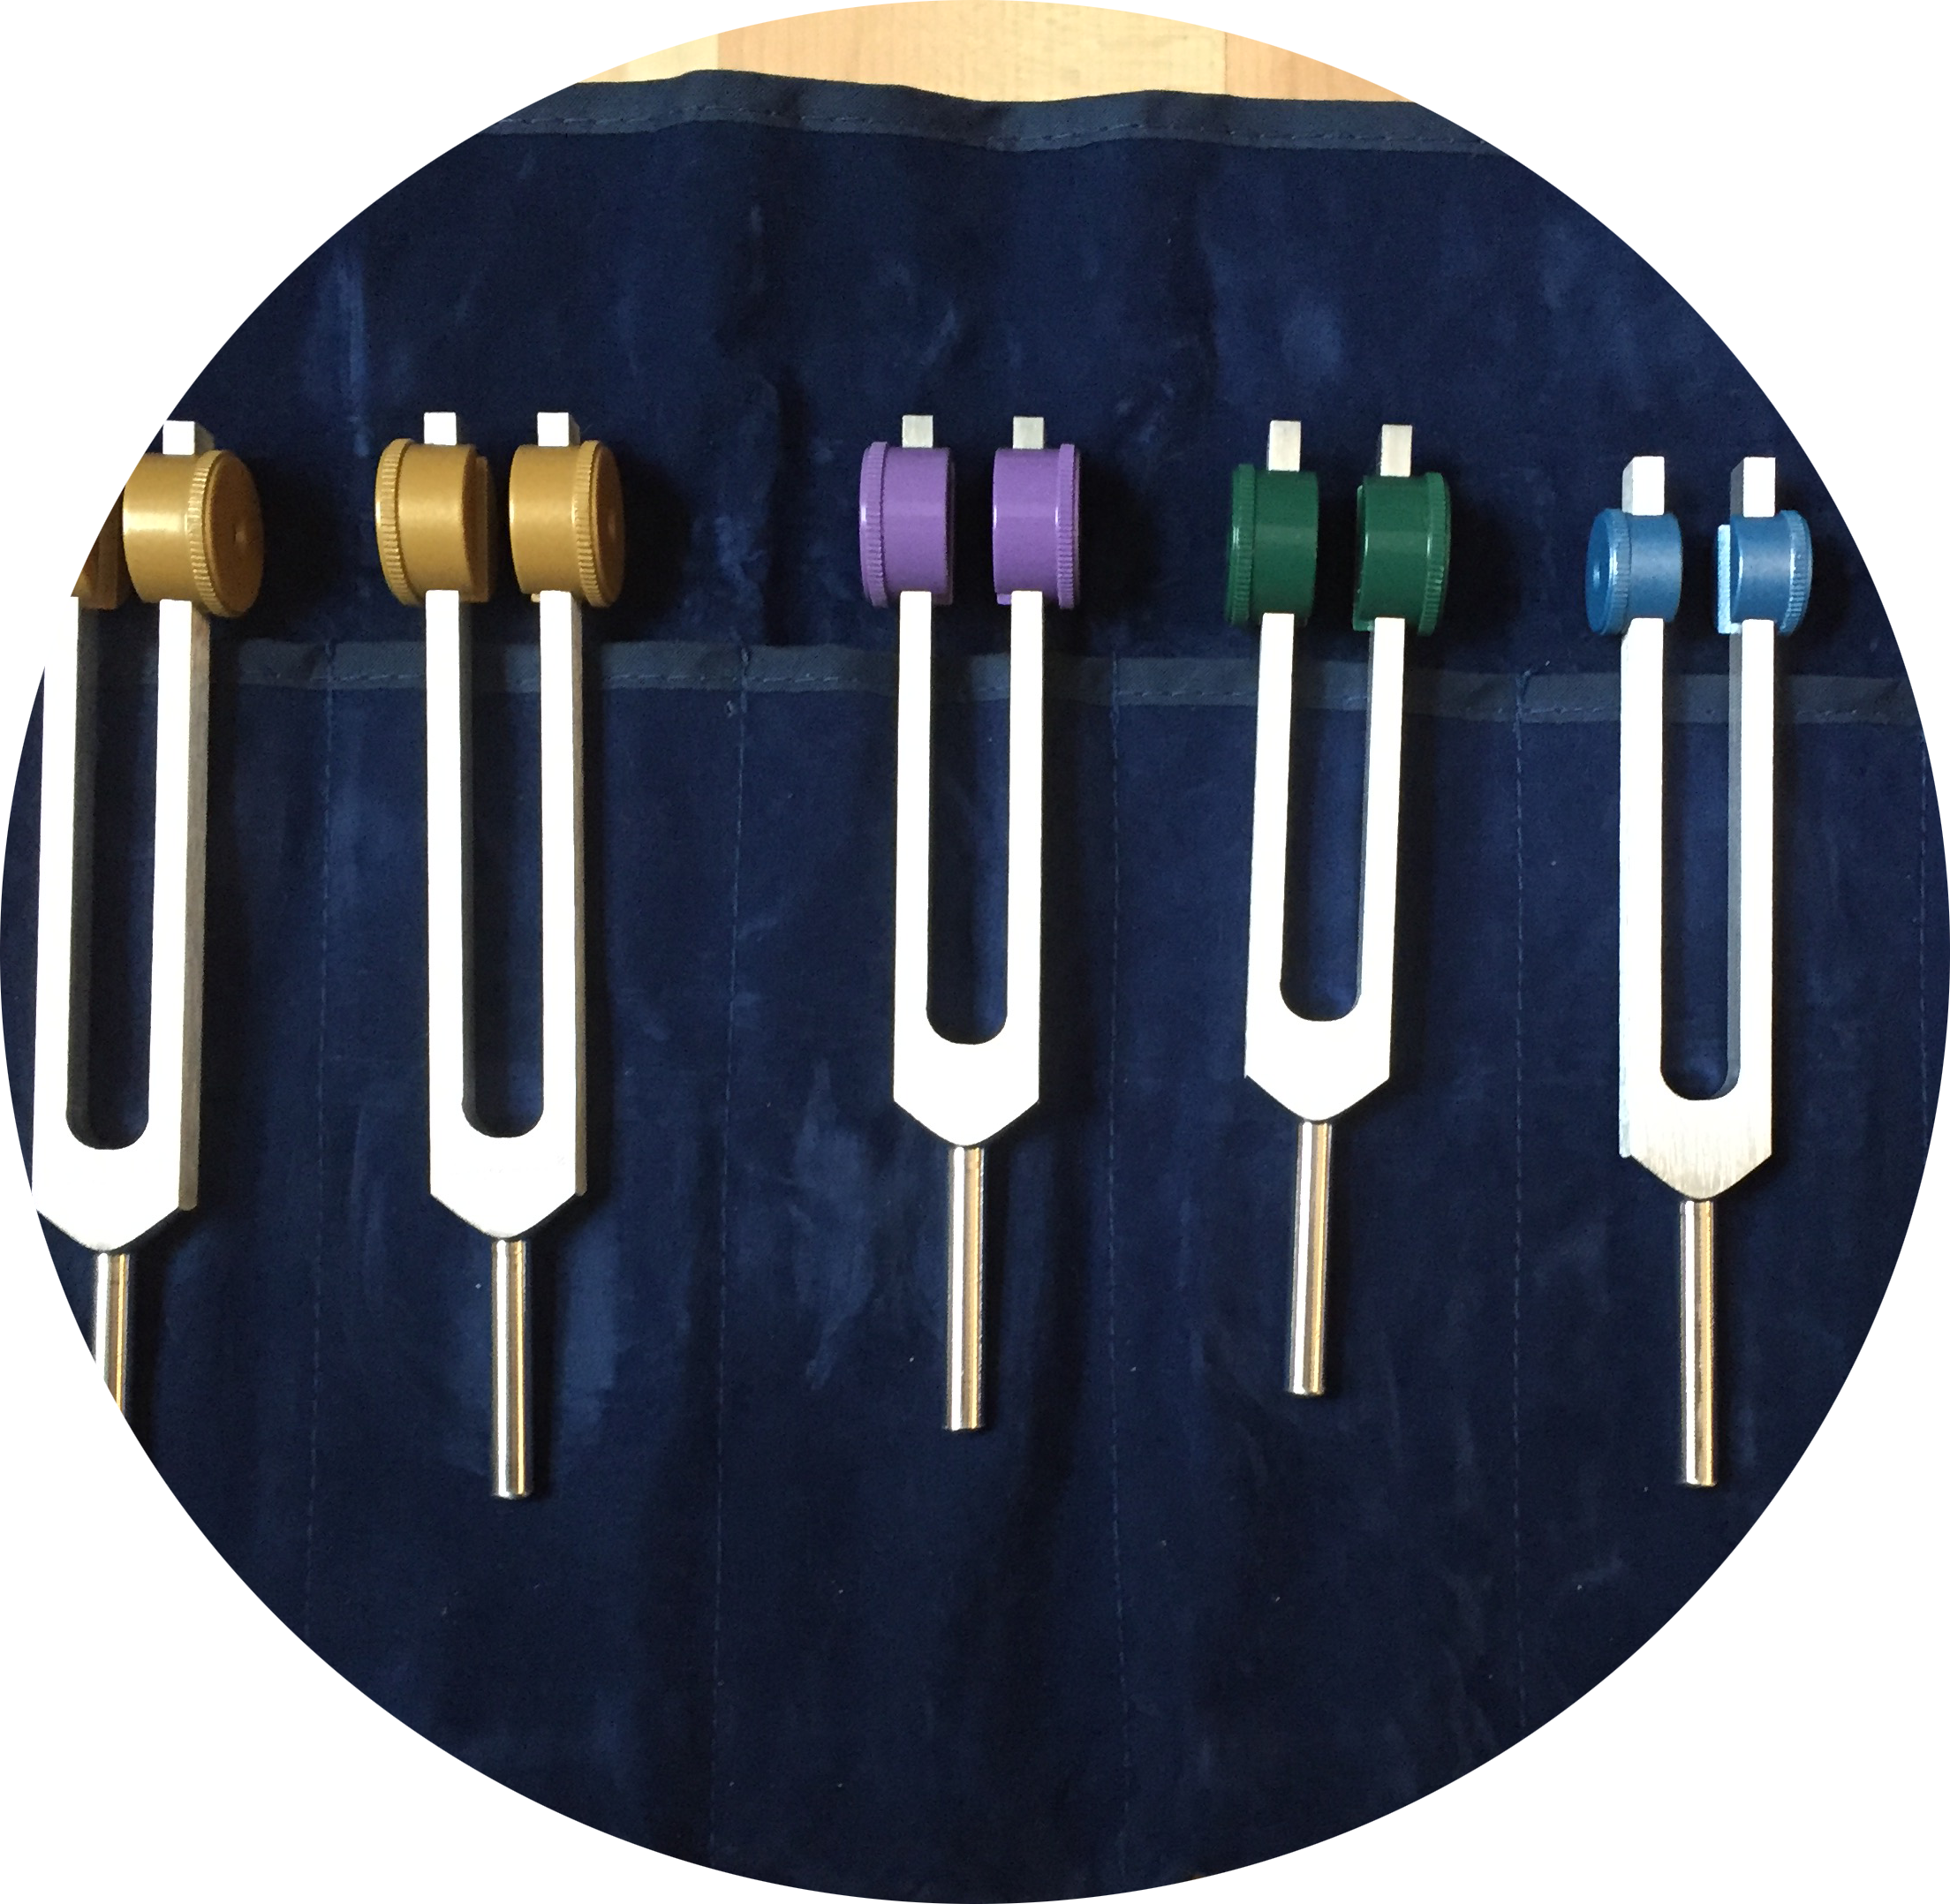 Tuning Forks - Tuning forks are activated and then they are placed on points of the body. The sound vibration travels through the body, assisting in relaxation and healing.